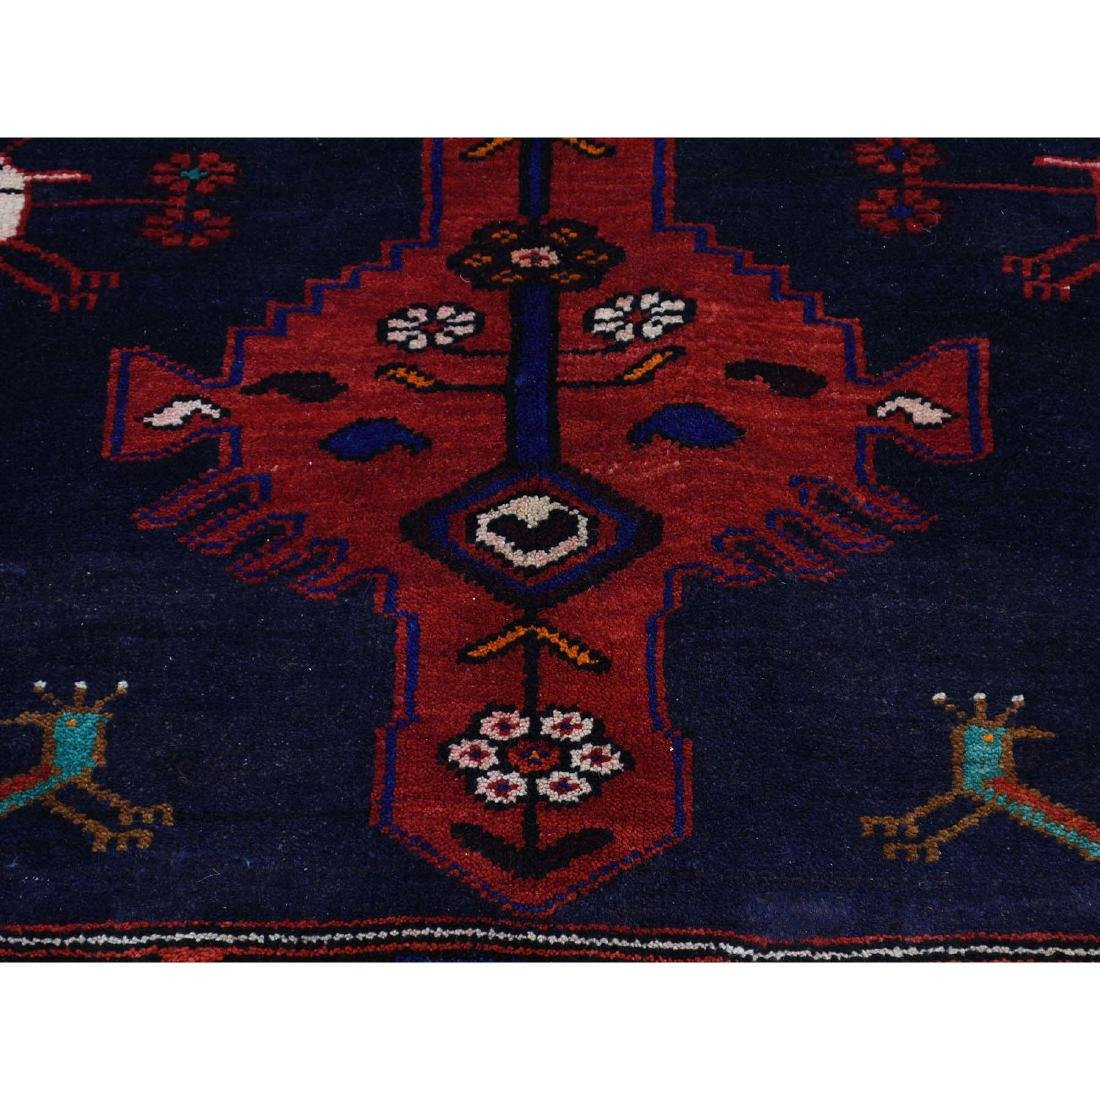 Hand Knotted Semi Antique Persian Hamadan Rug 5.1x9 - 8